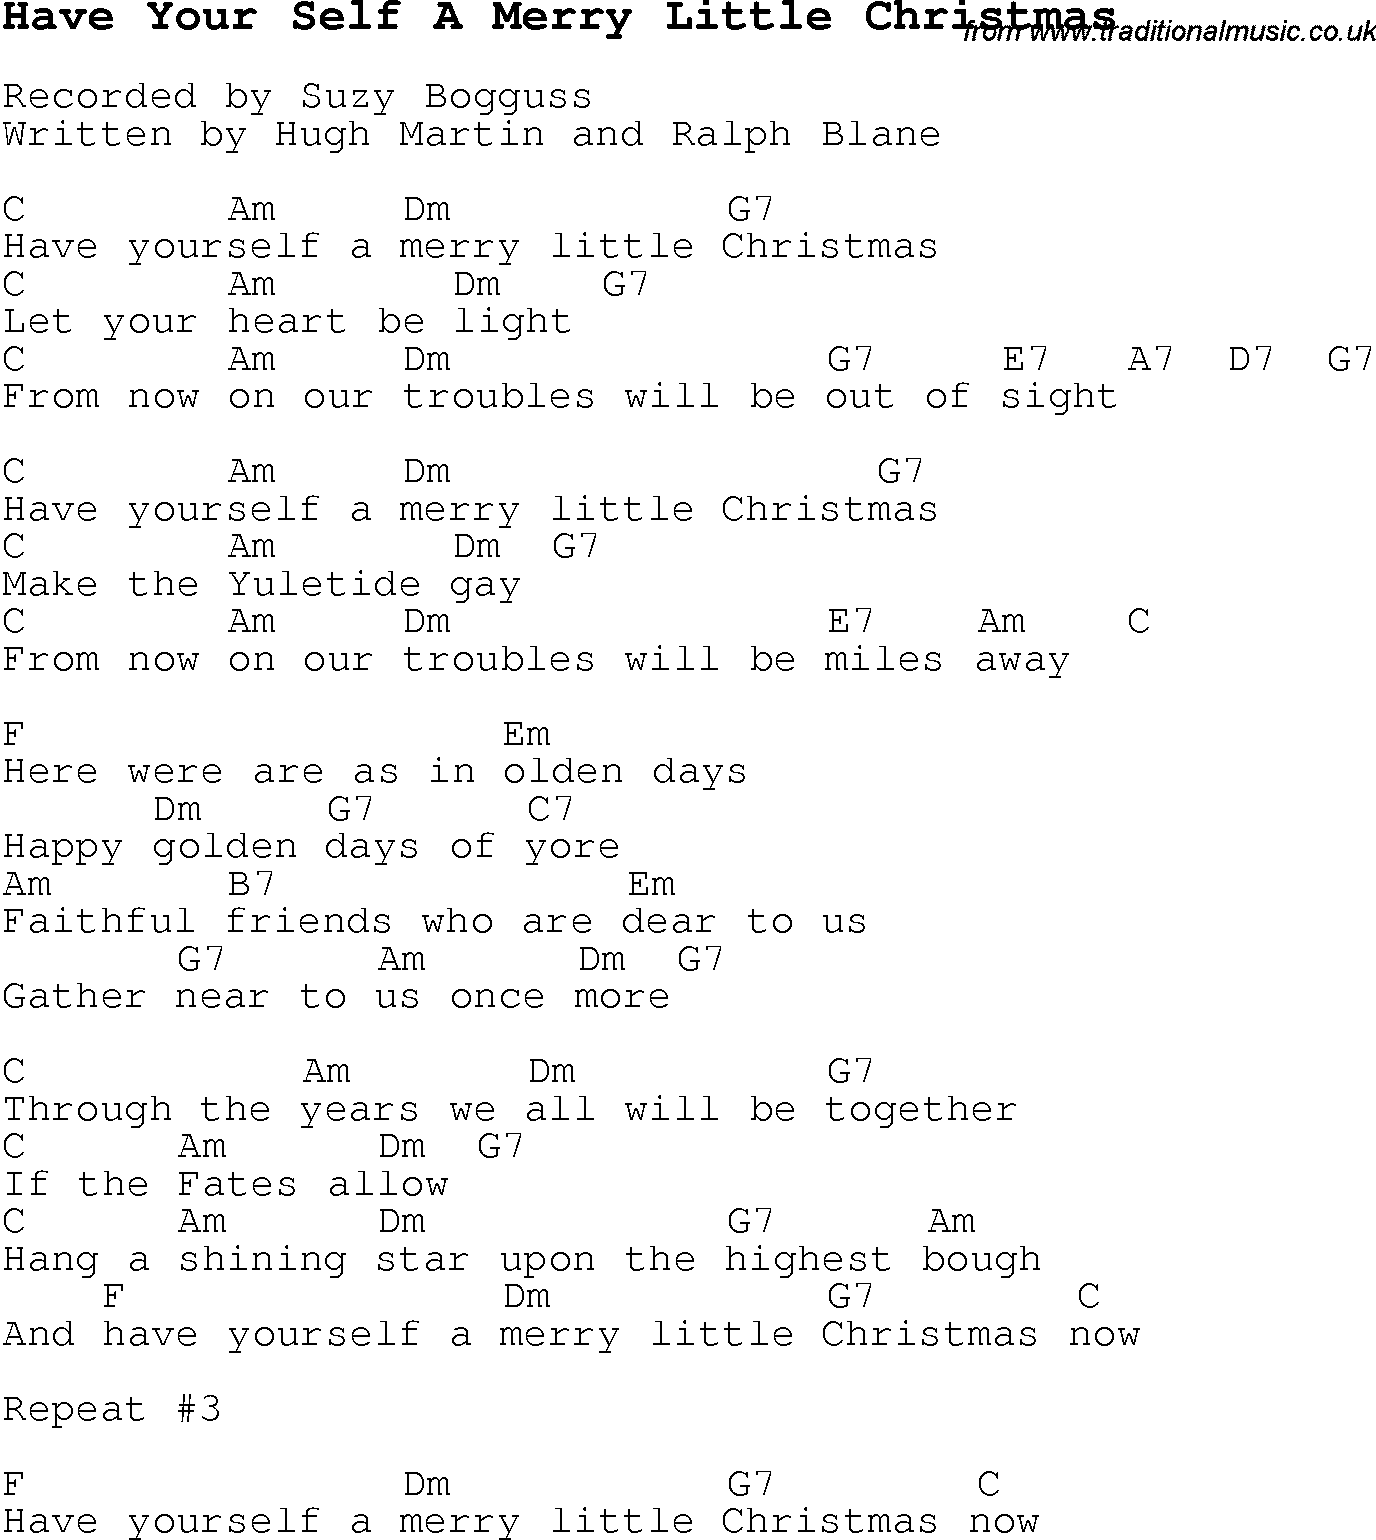 Have Yourself A Merry Little Christmas Chords.Christmas Carol Song Lyrics With Chords For Have Your Self A